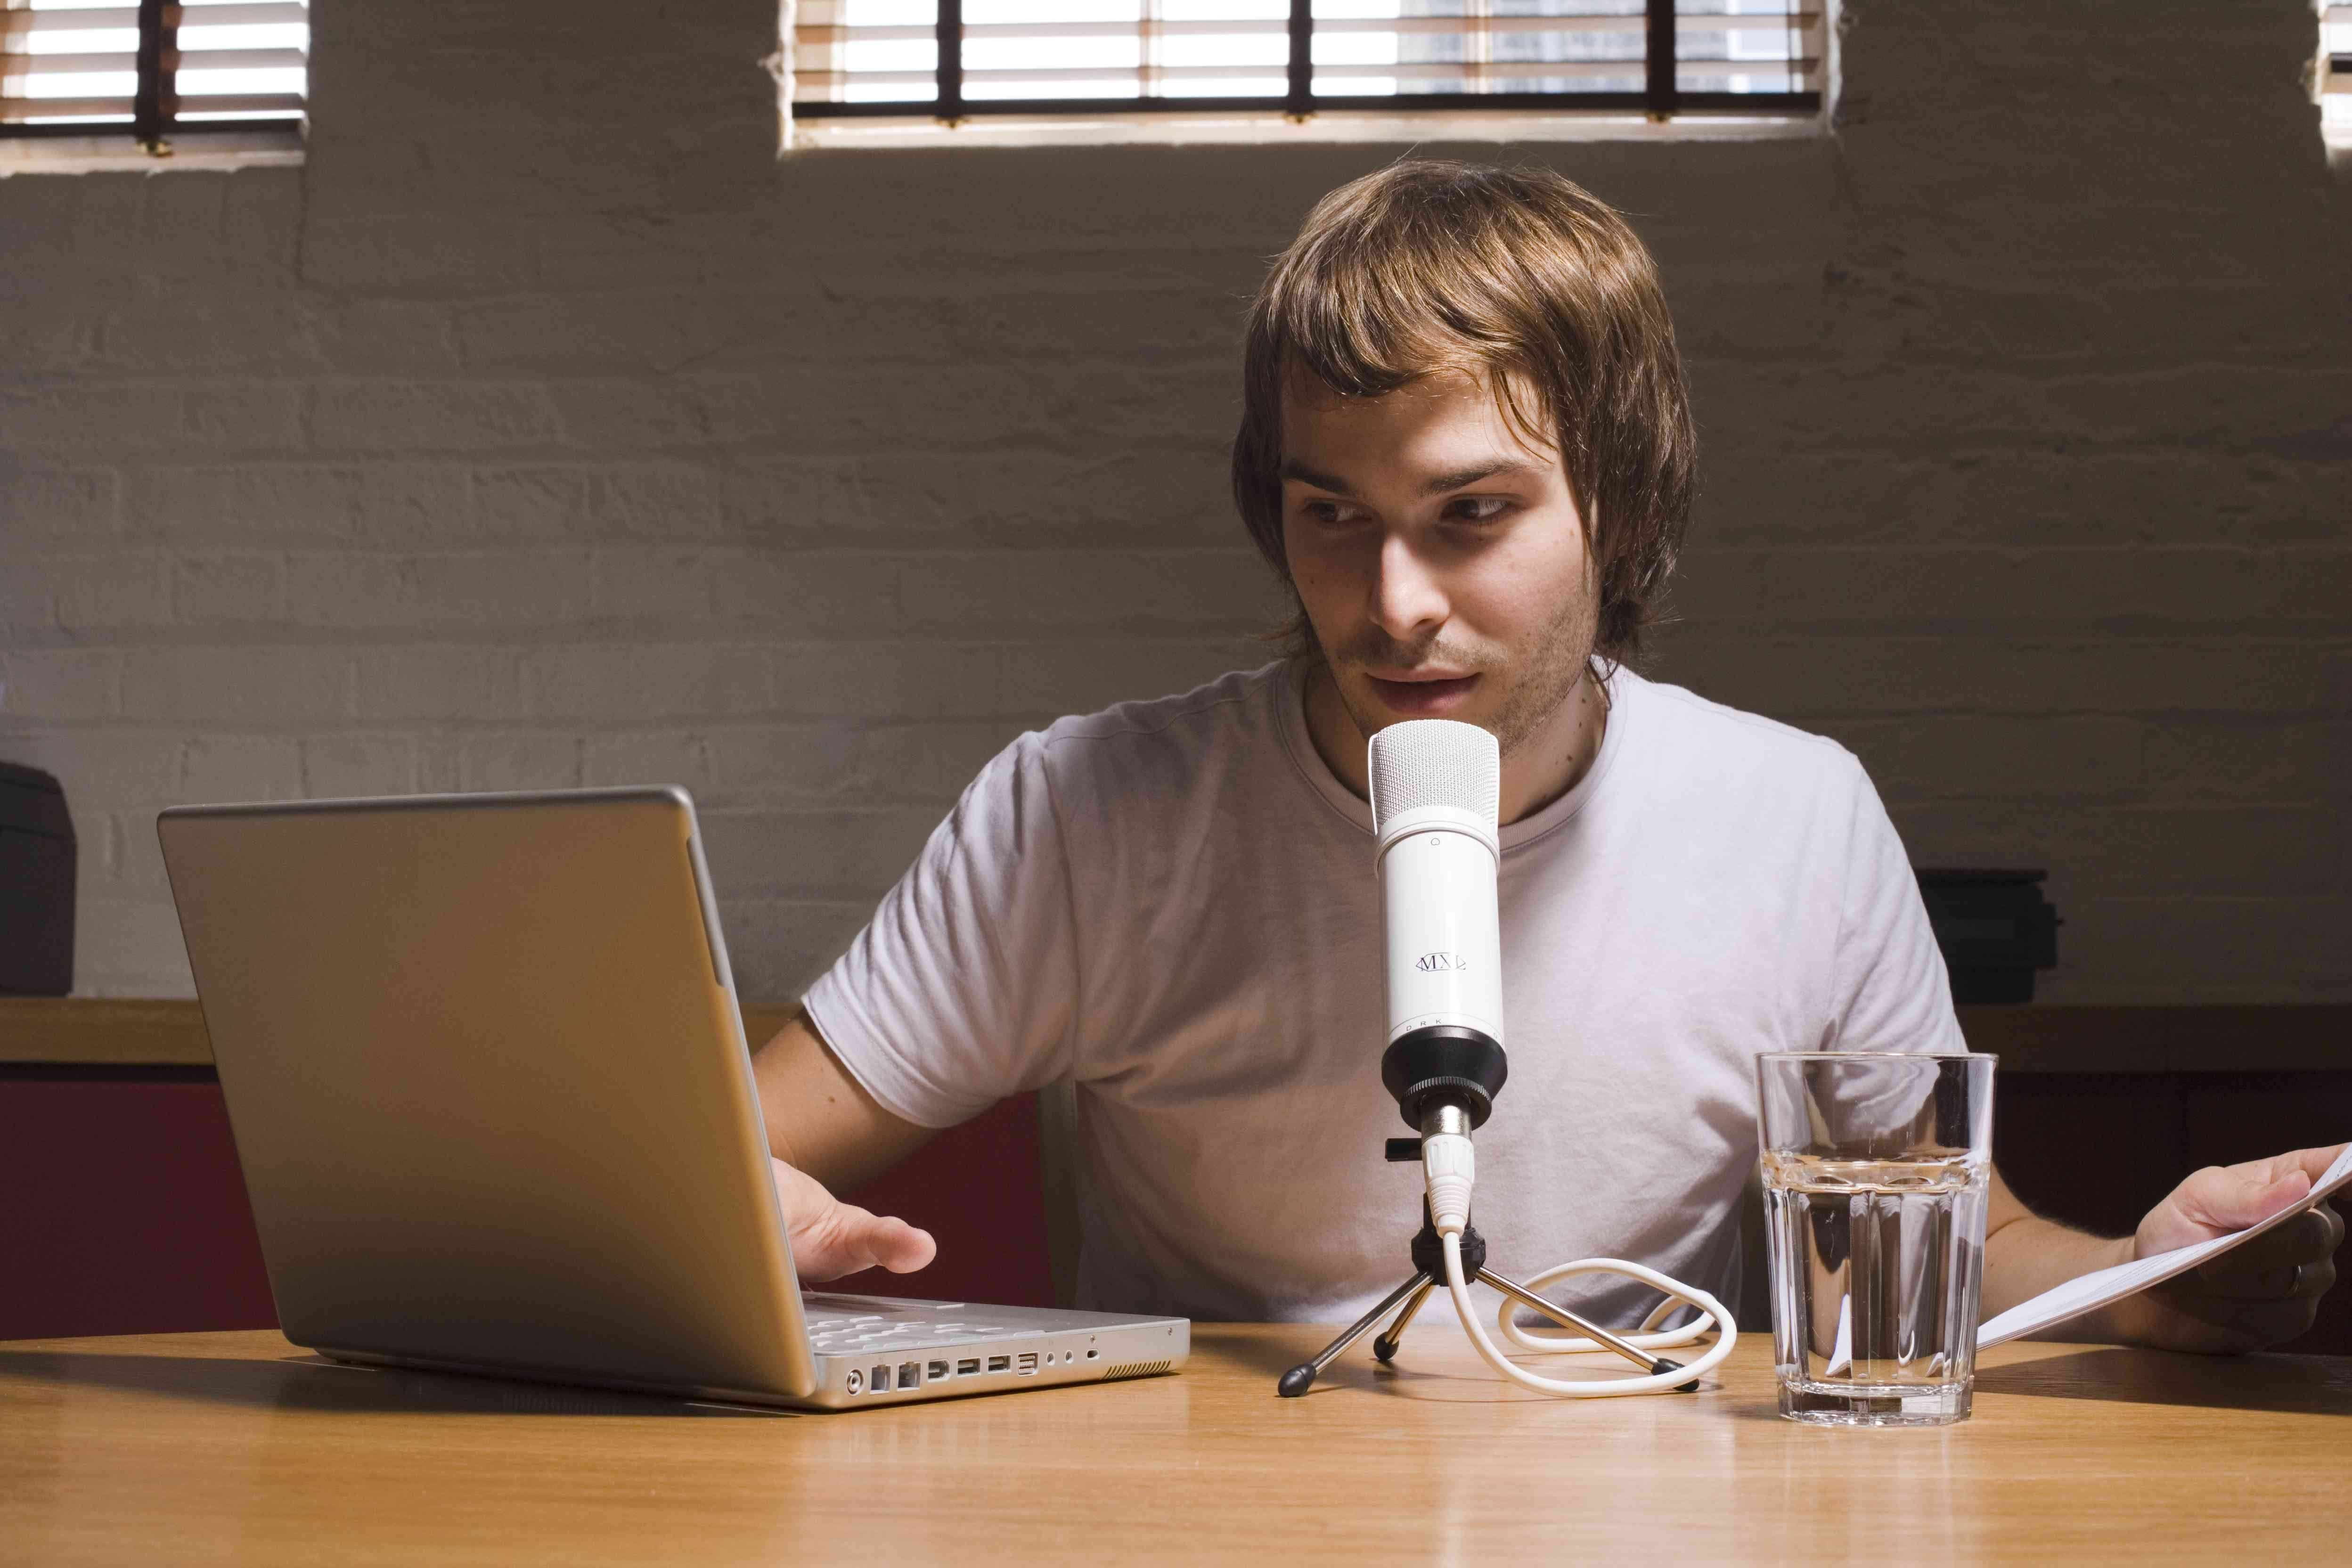 Person with laptop and microphone.